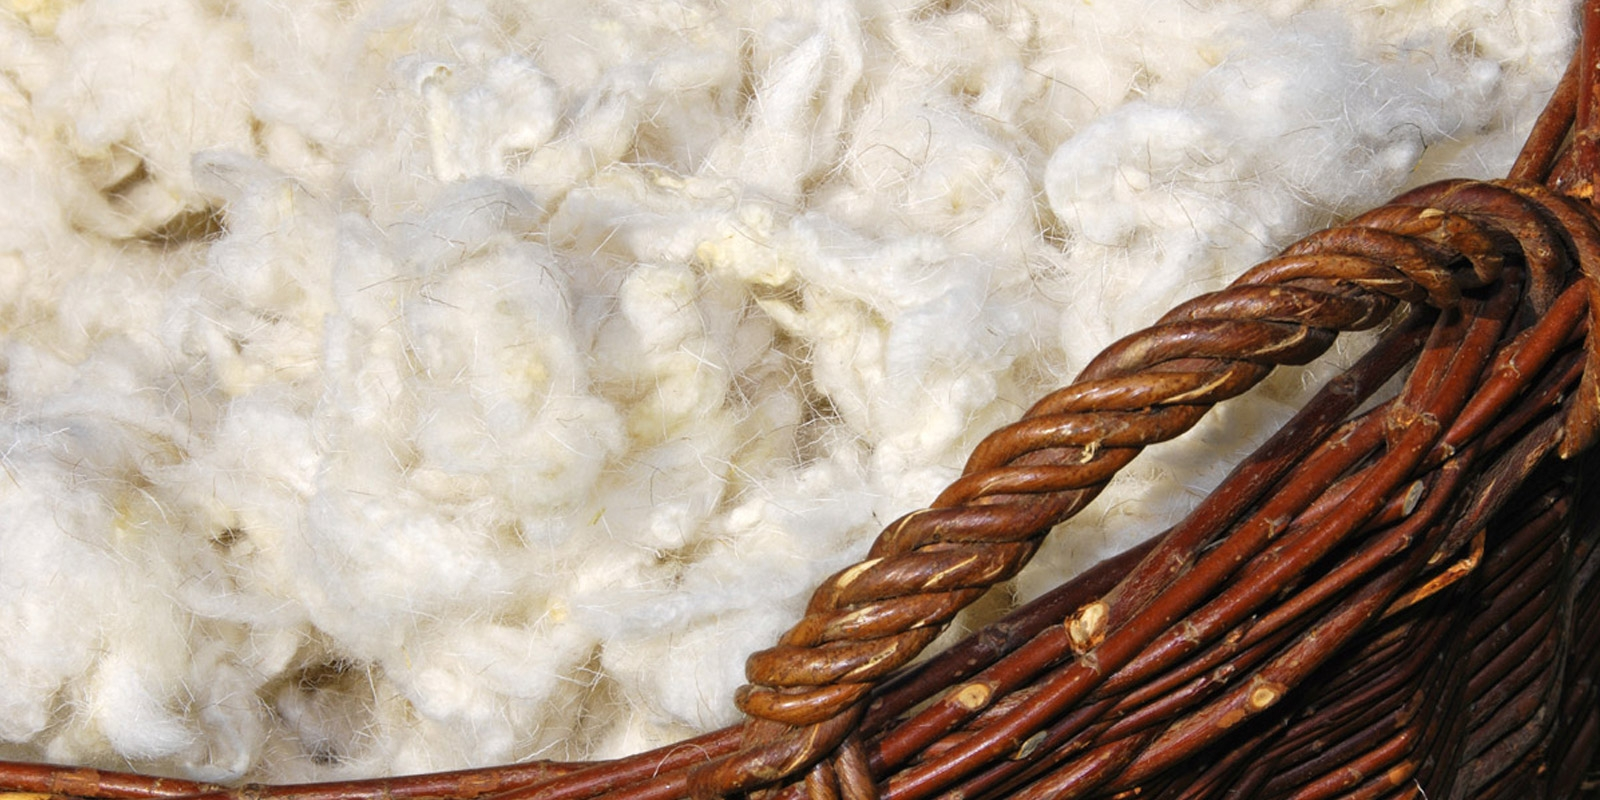 Wool - The Natural Fire Retardant